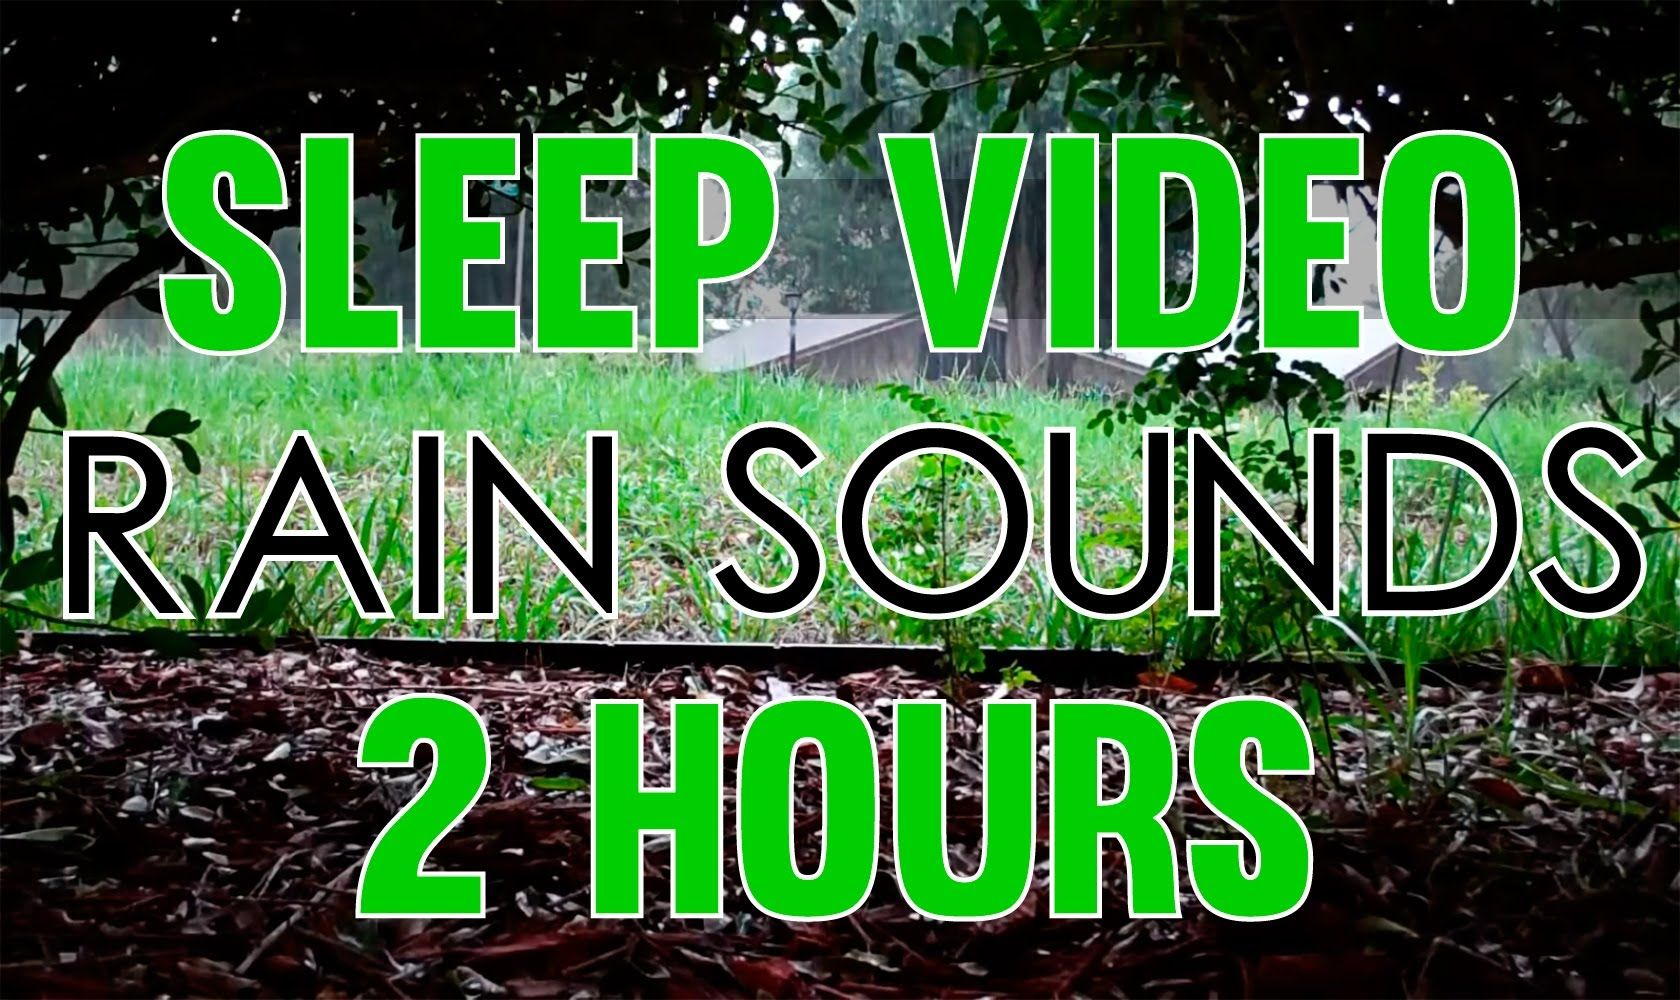 Rain Sounds 2 Hours Sleep Video Heavy Rain Sounds Hd Sound Of Rain Rain And Thunder Sounds Rain And Thunder